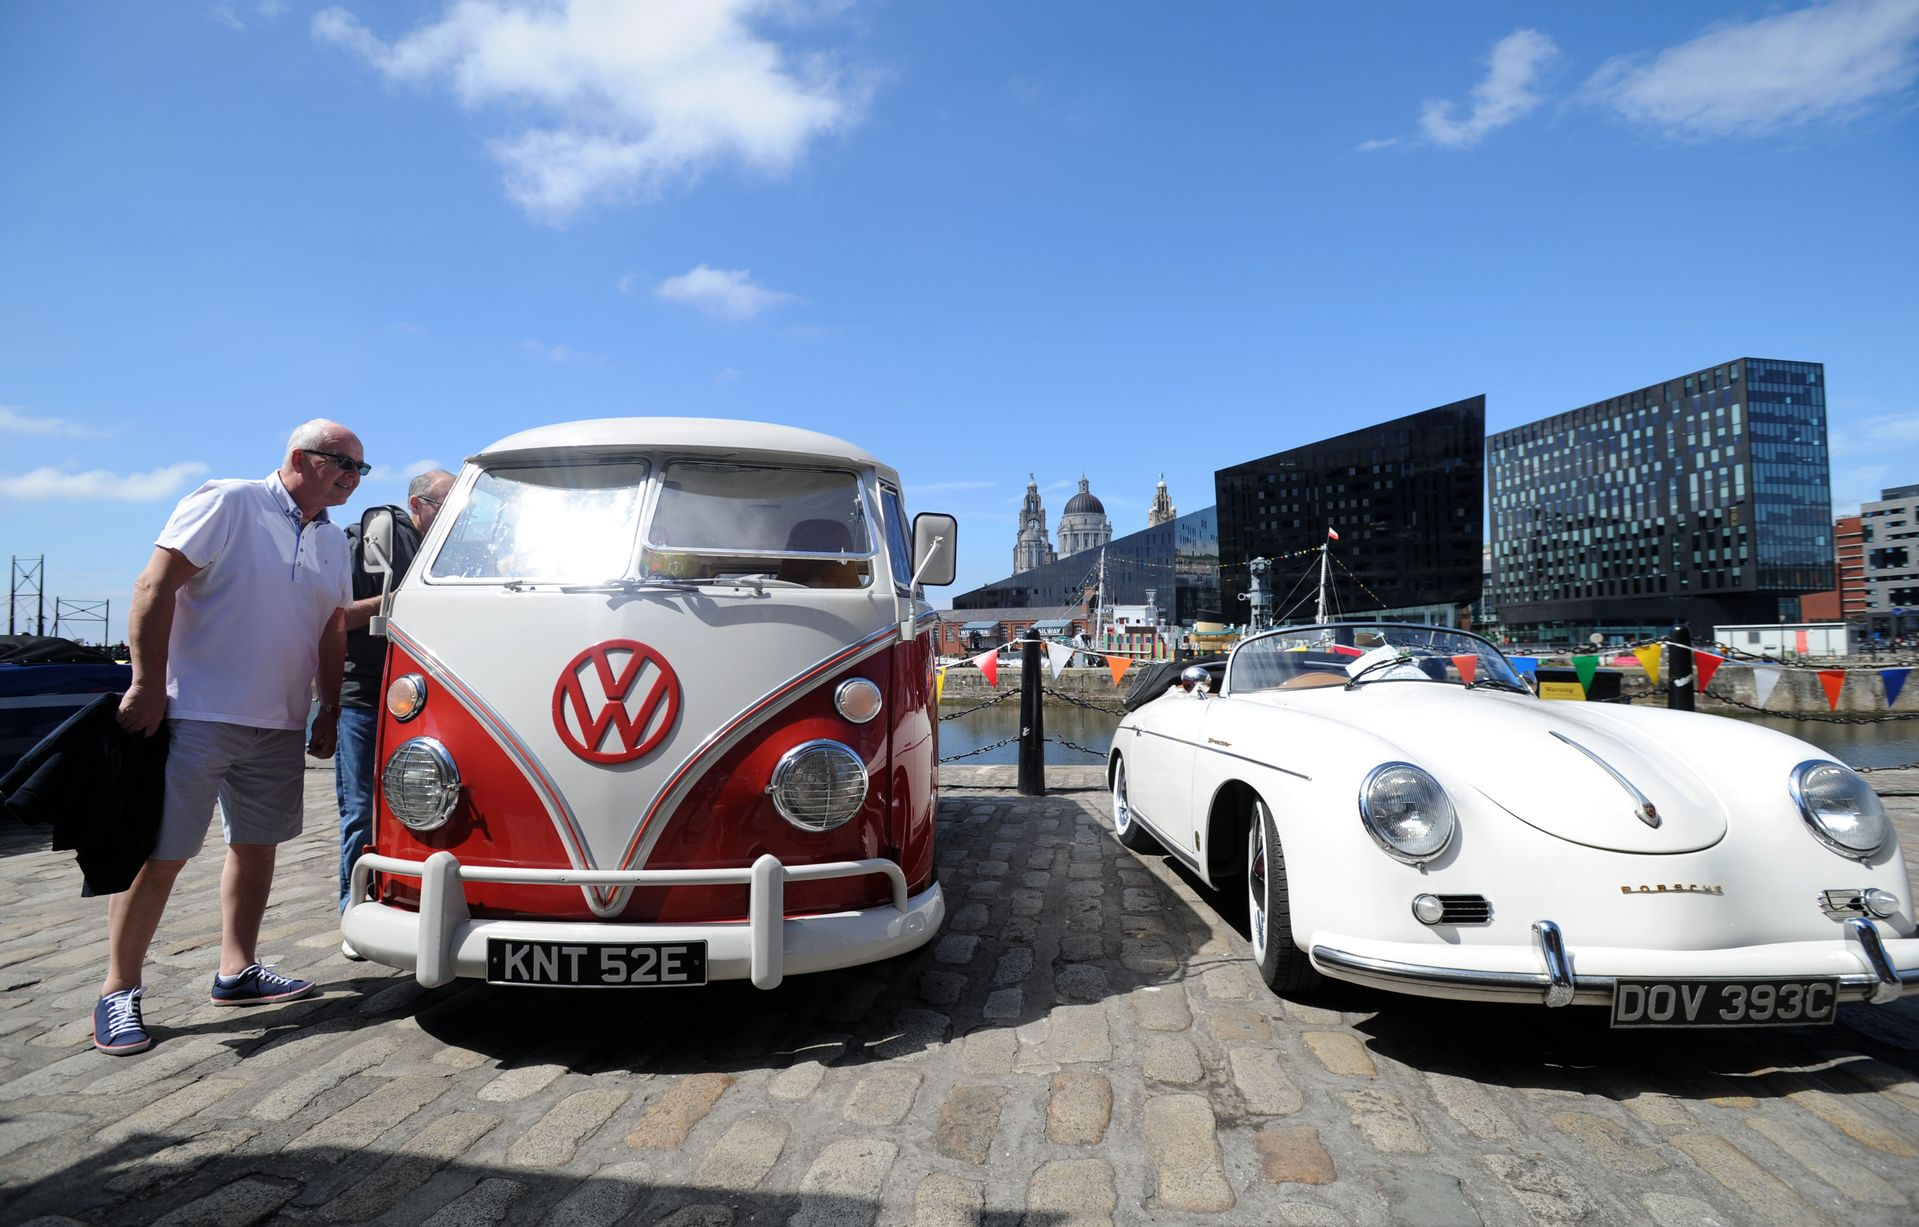 Fine Tune Your Weekend To This Vintage Event In July 5